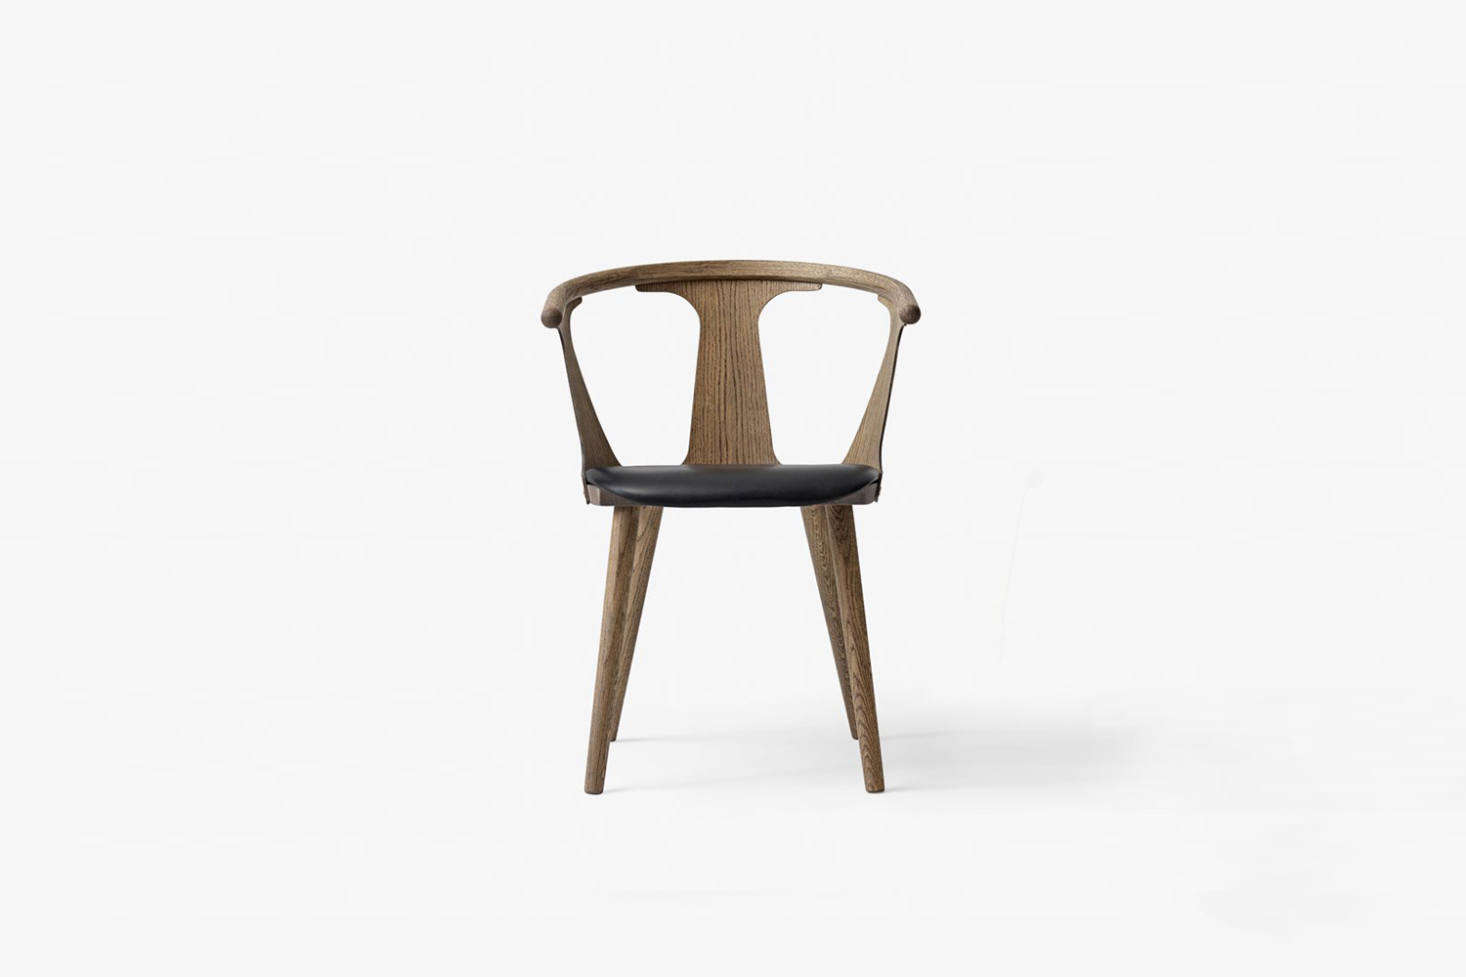 The dining chairs are the In Between Chair by Sami Kallio for &Tradition in smoked oiled oak. Contact &Tradition for more information.